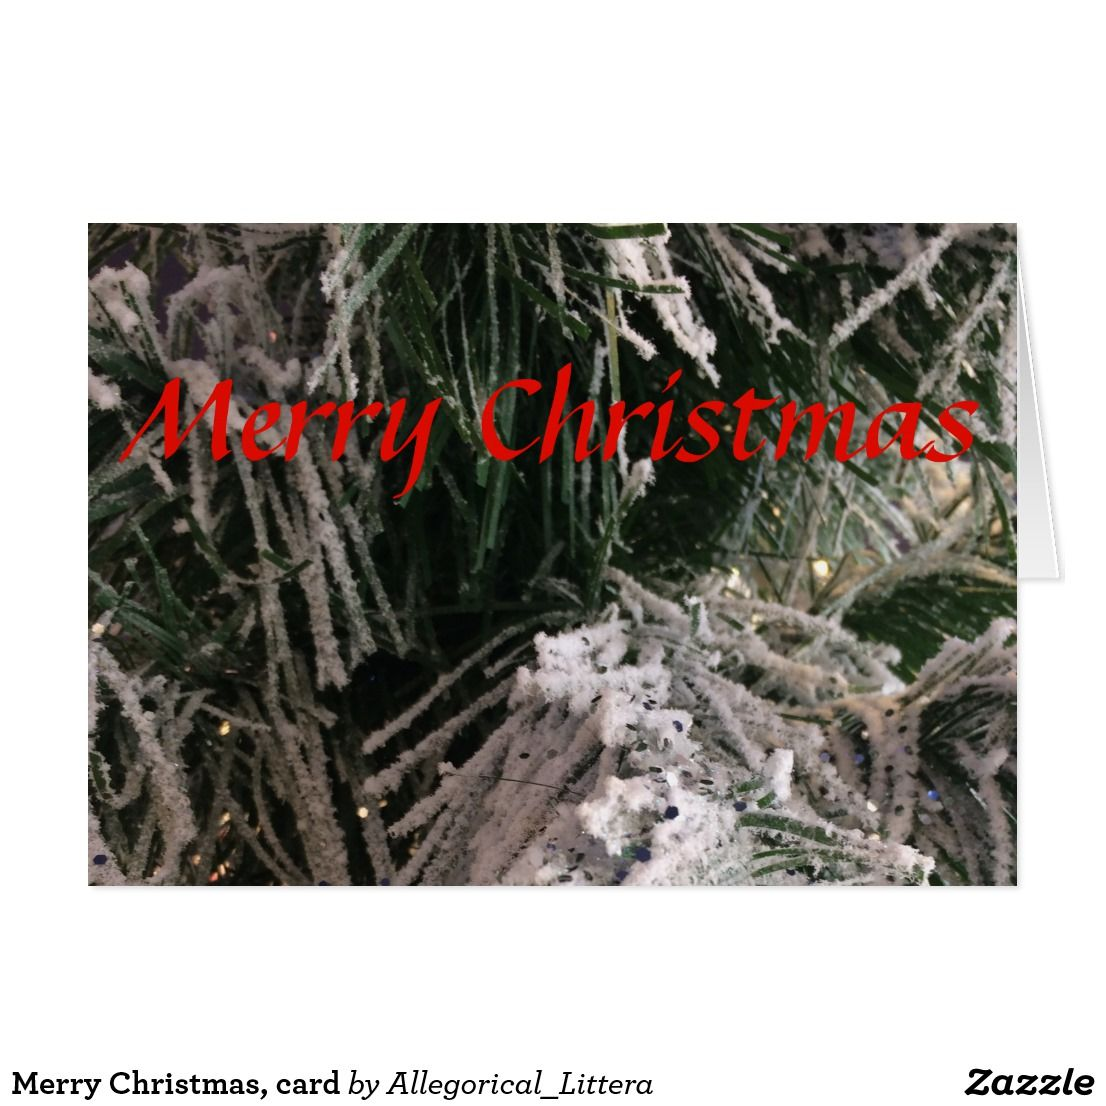 Merry Christmas, card | Zazzle Greeting Cards & clothing | Pinterest ...